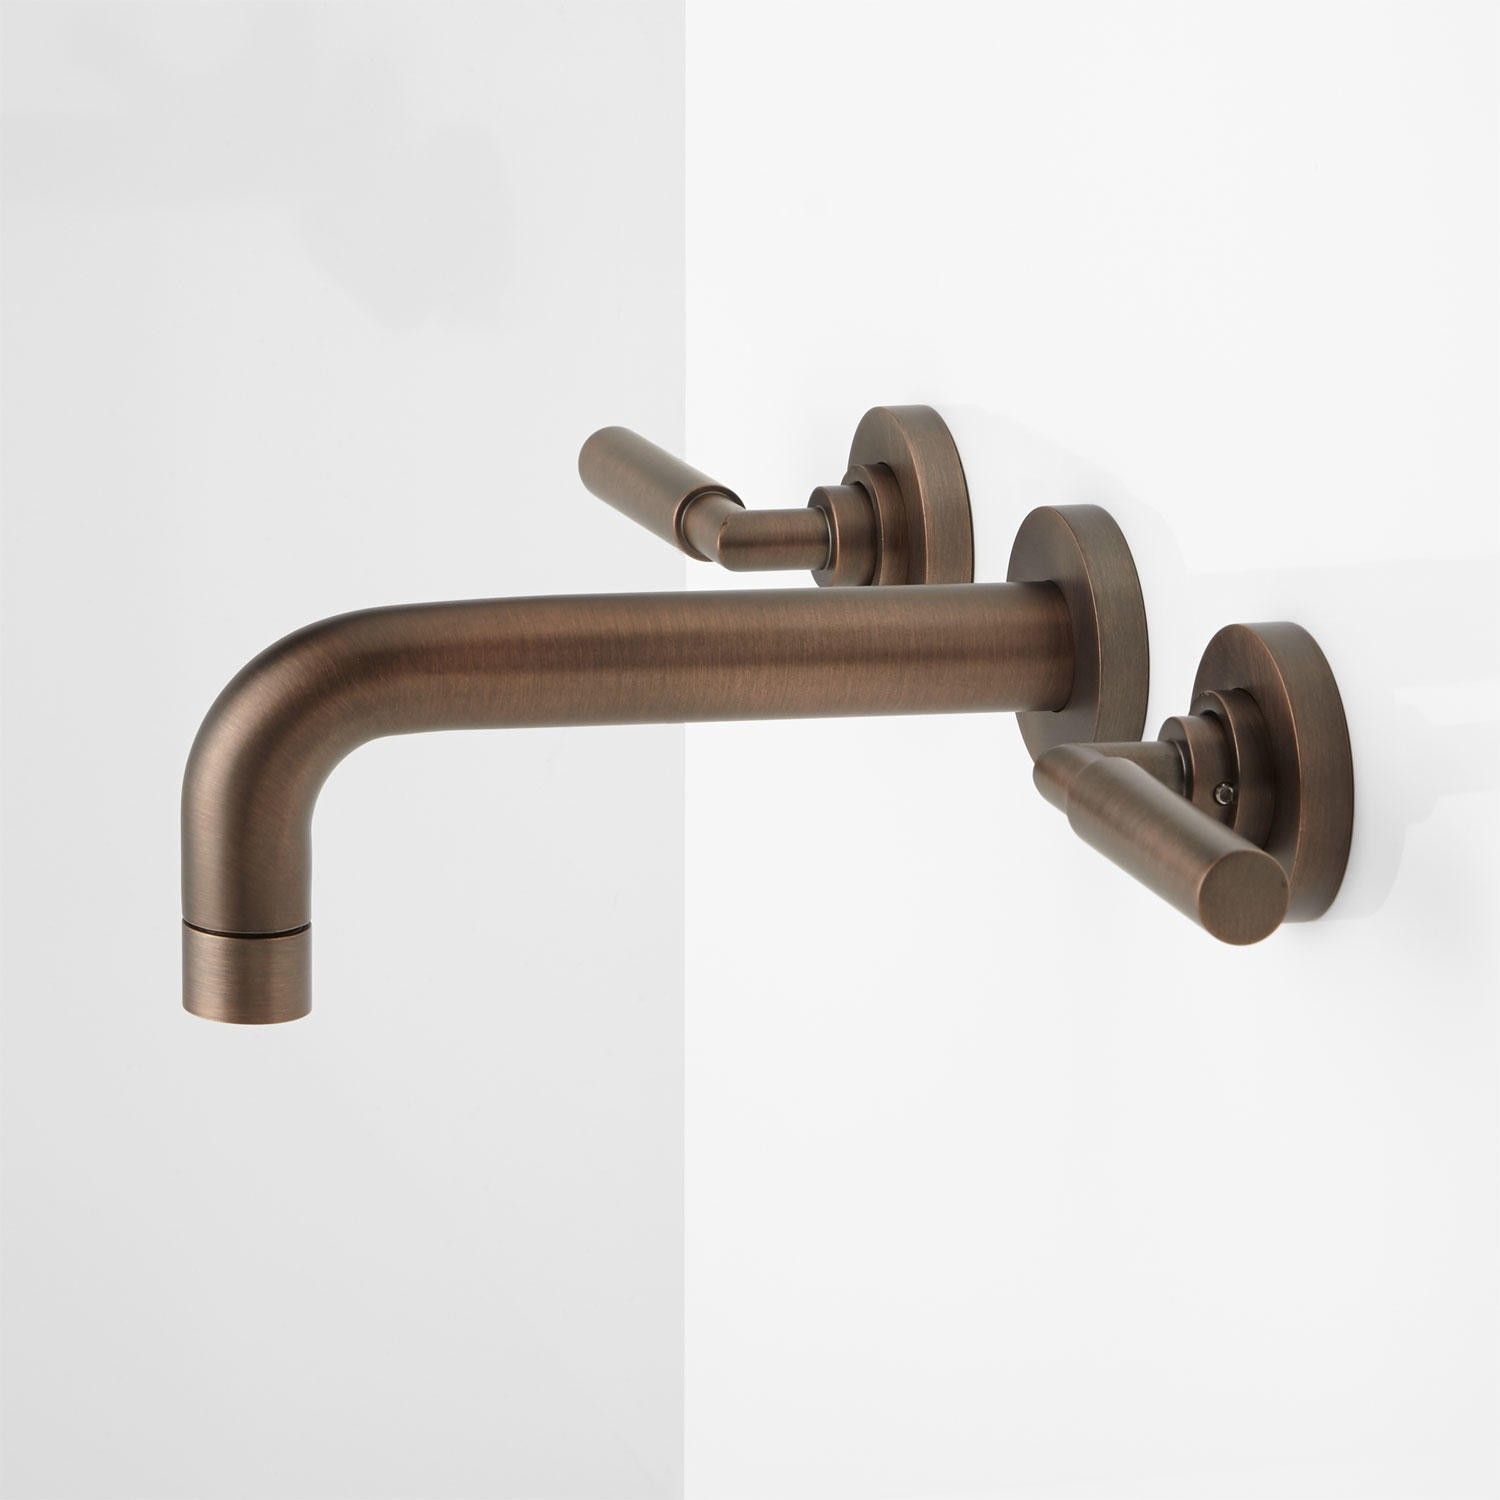 touch faucet com bronze dp kraus sink on oil riviera fvs single rubbed faucets amazon lever bathroom vessel